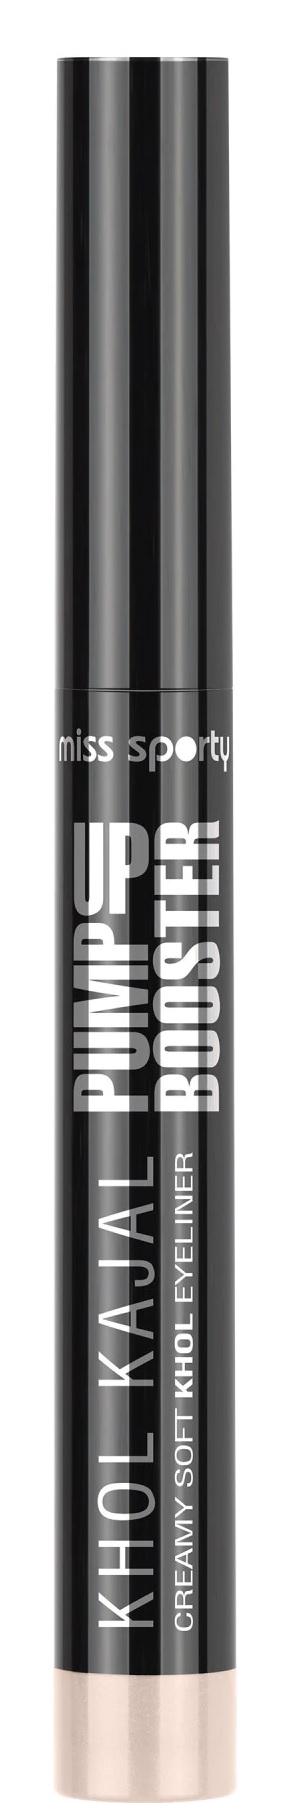 Miss Sporty Pump Up Eyeliner Pencil Luminous Beige 003